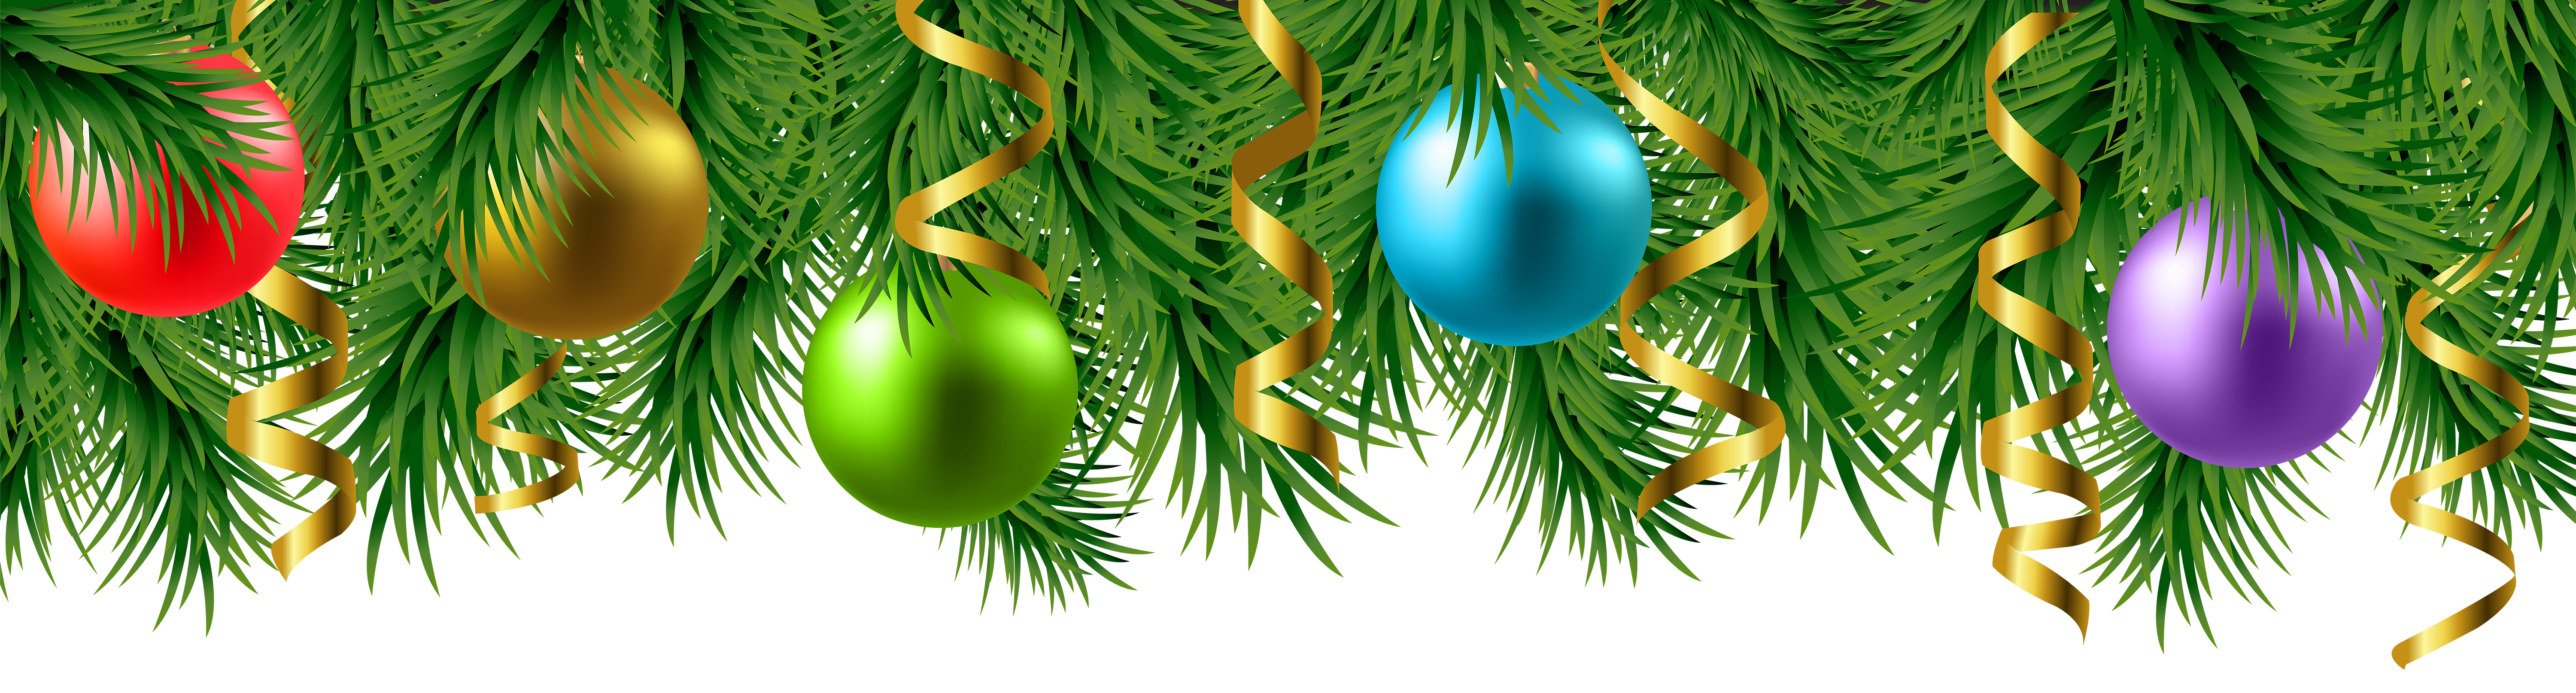 Christmas branches clipart picture library Christmas Deco Branches Transparent PNG Image | Gallery ... picture library